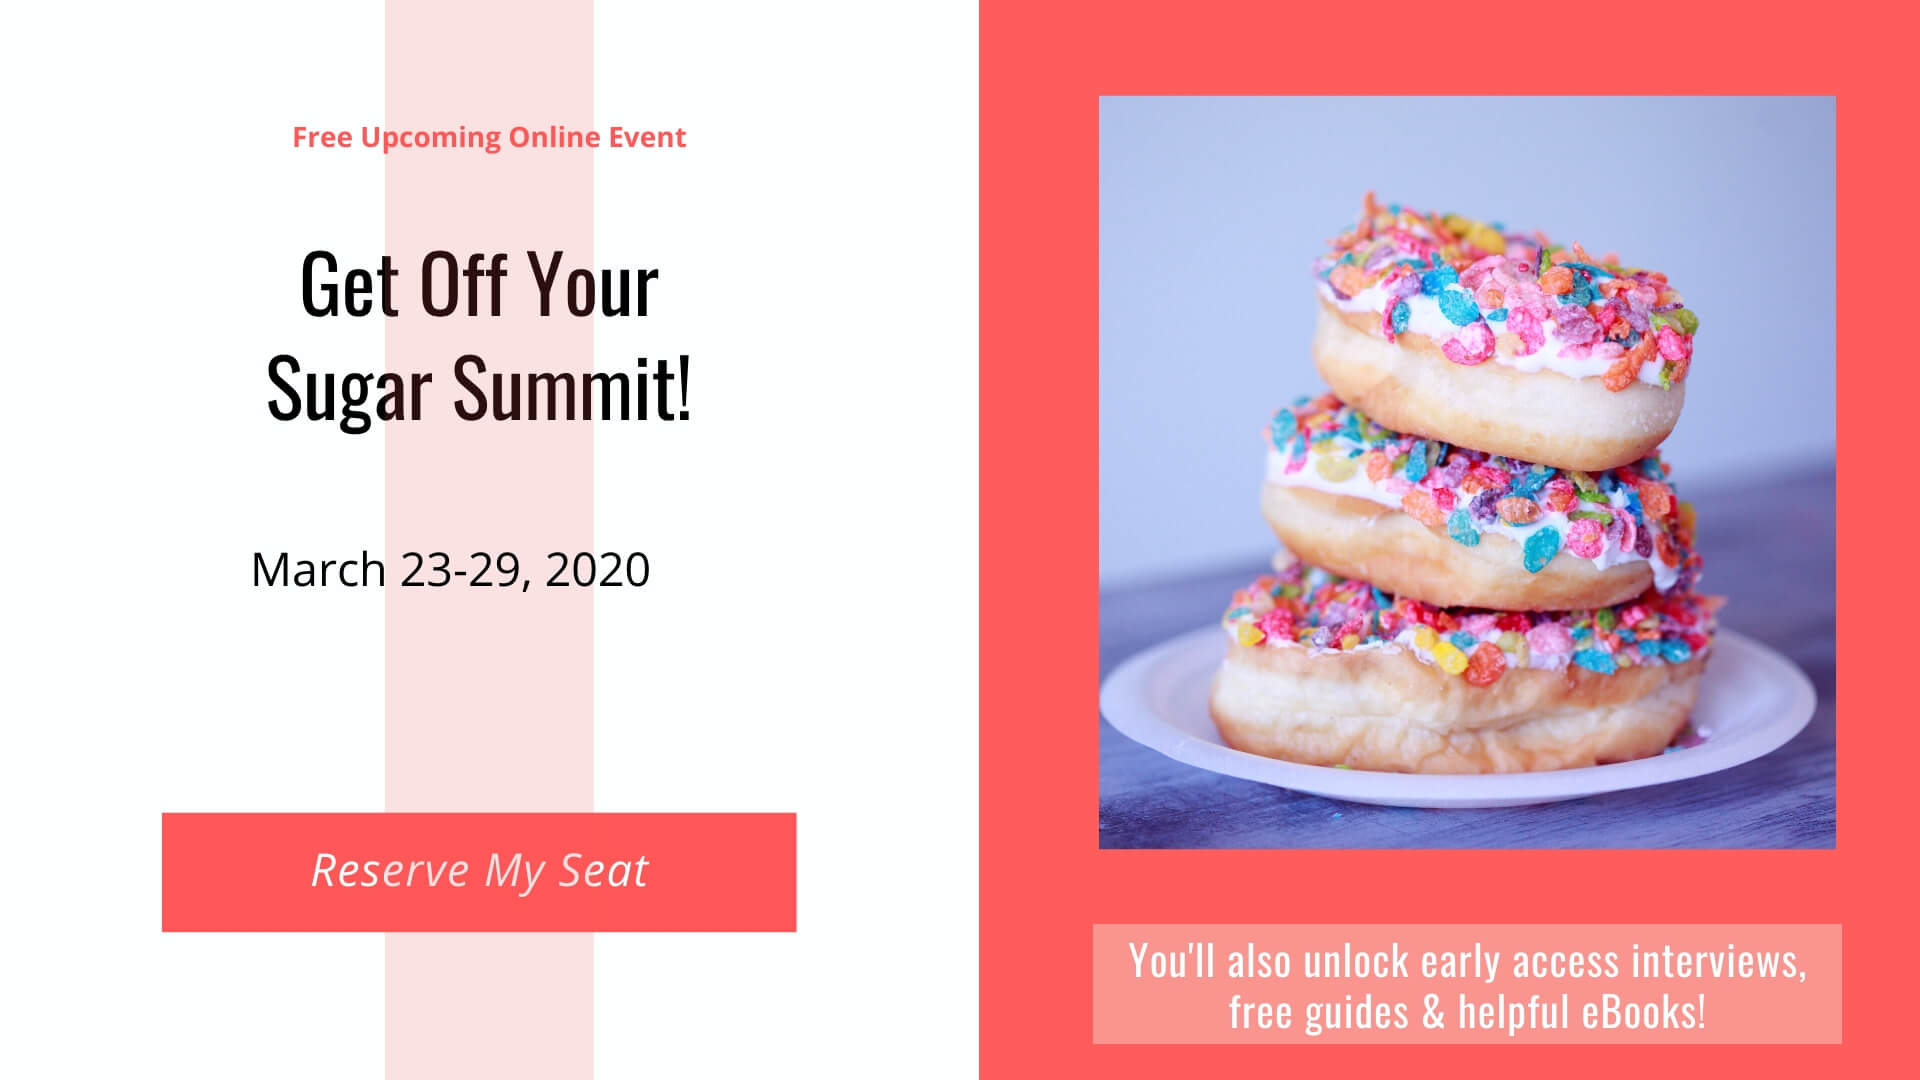 Get Off Your Sugar Summit